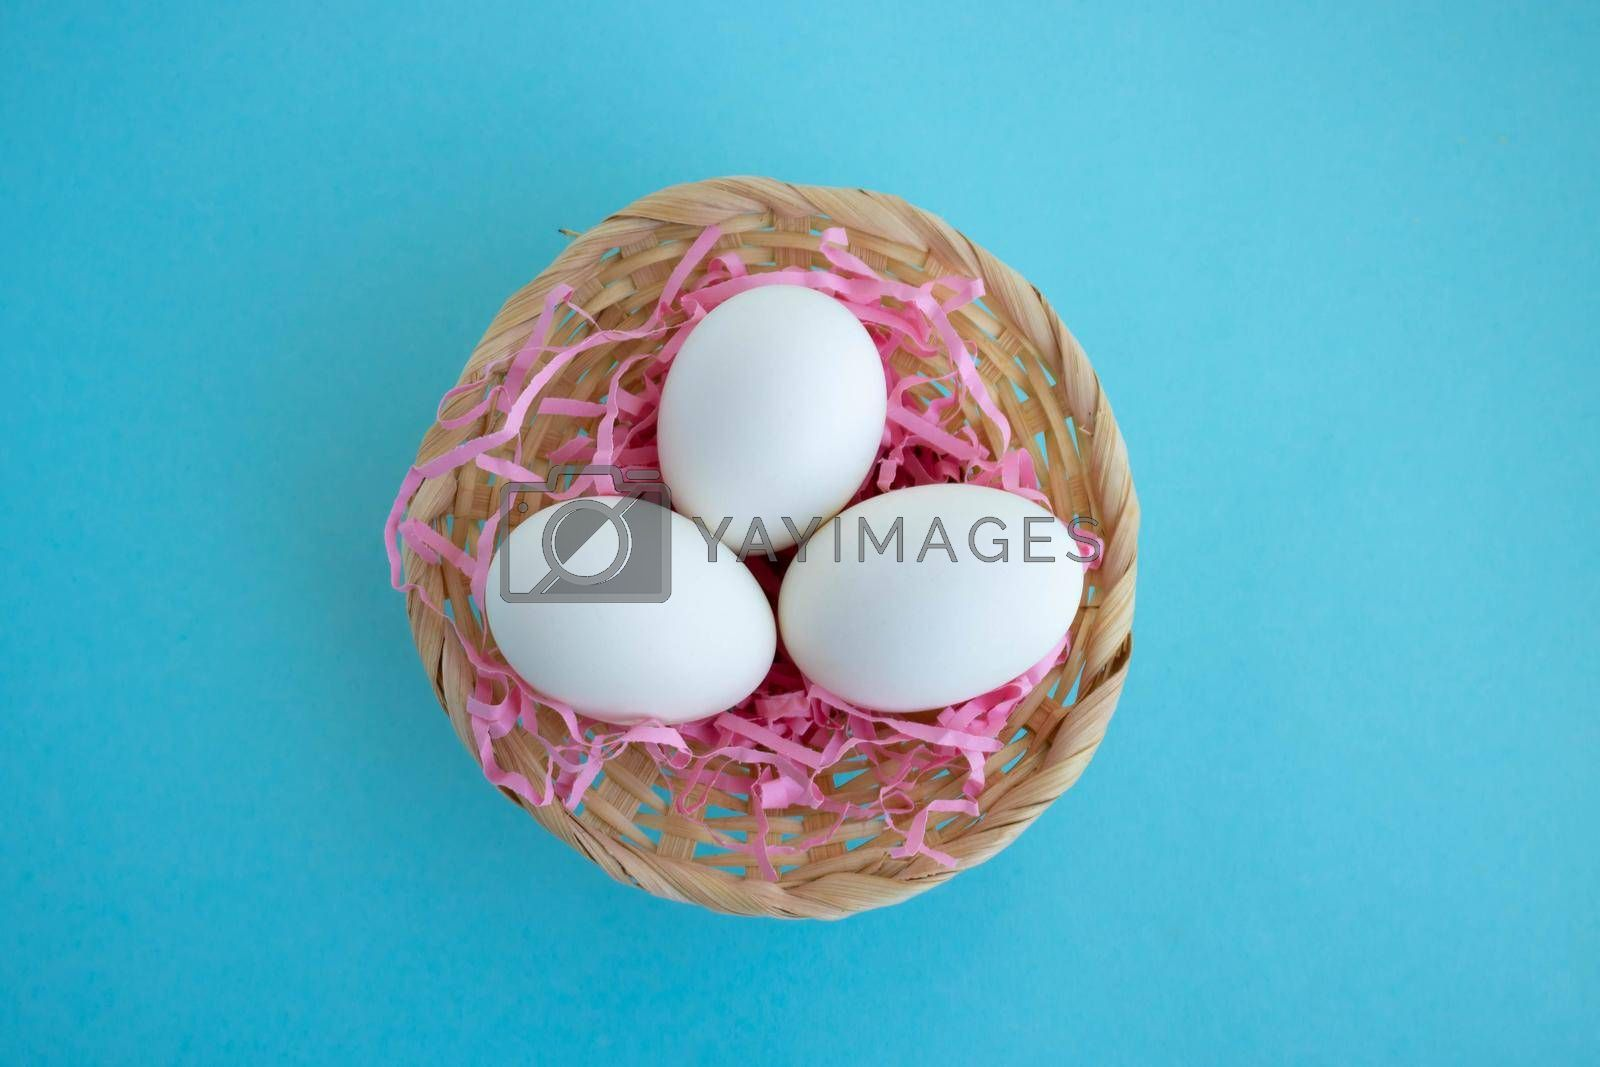 Royalty free image of A basket with white eggs on a blue background. Easter Concept by lapushka62